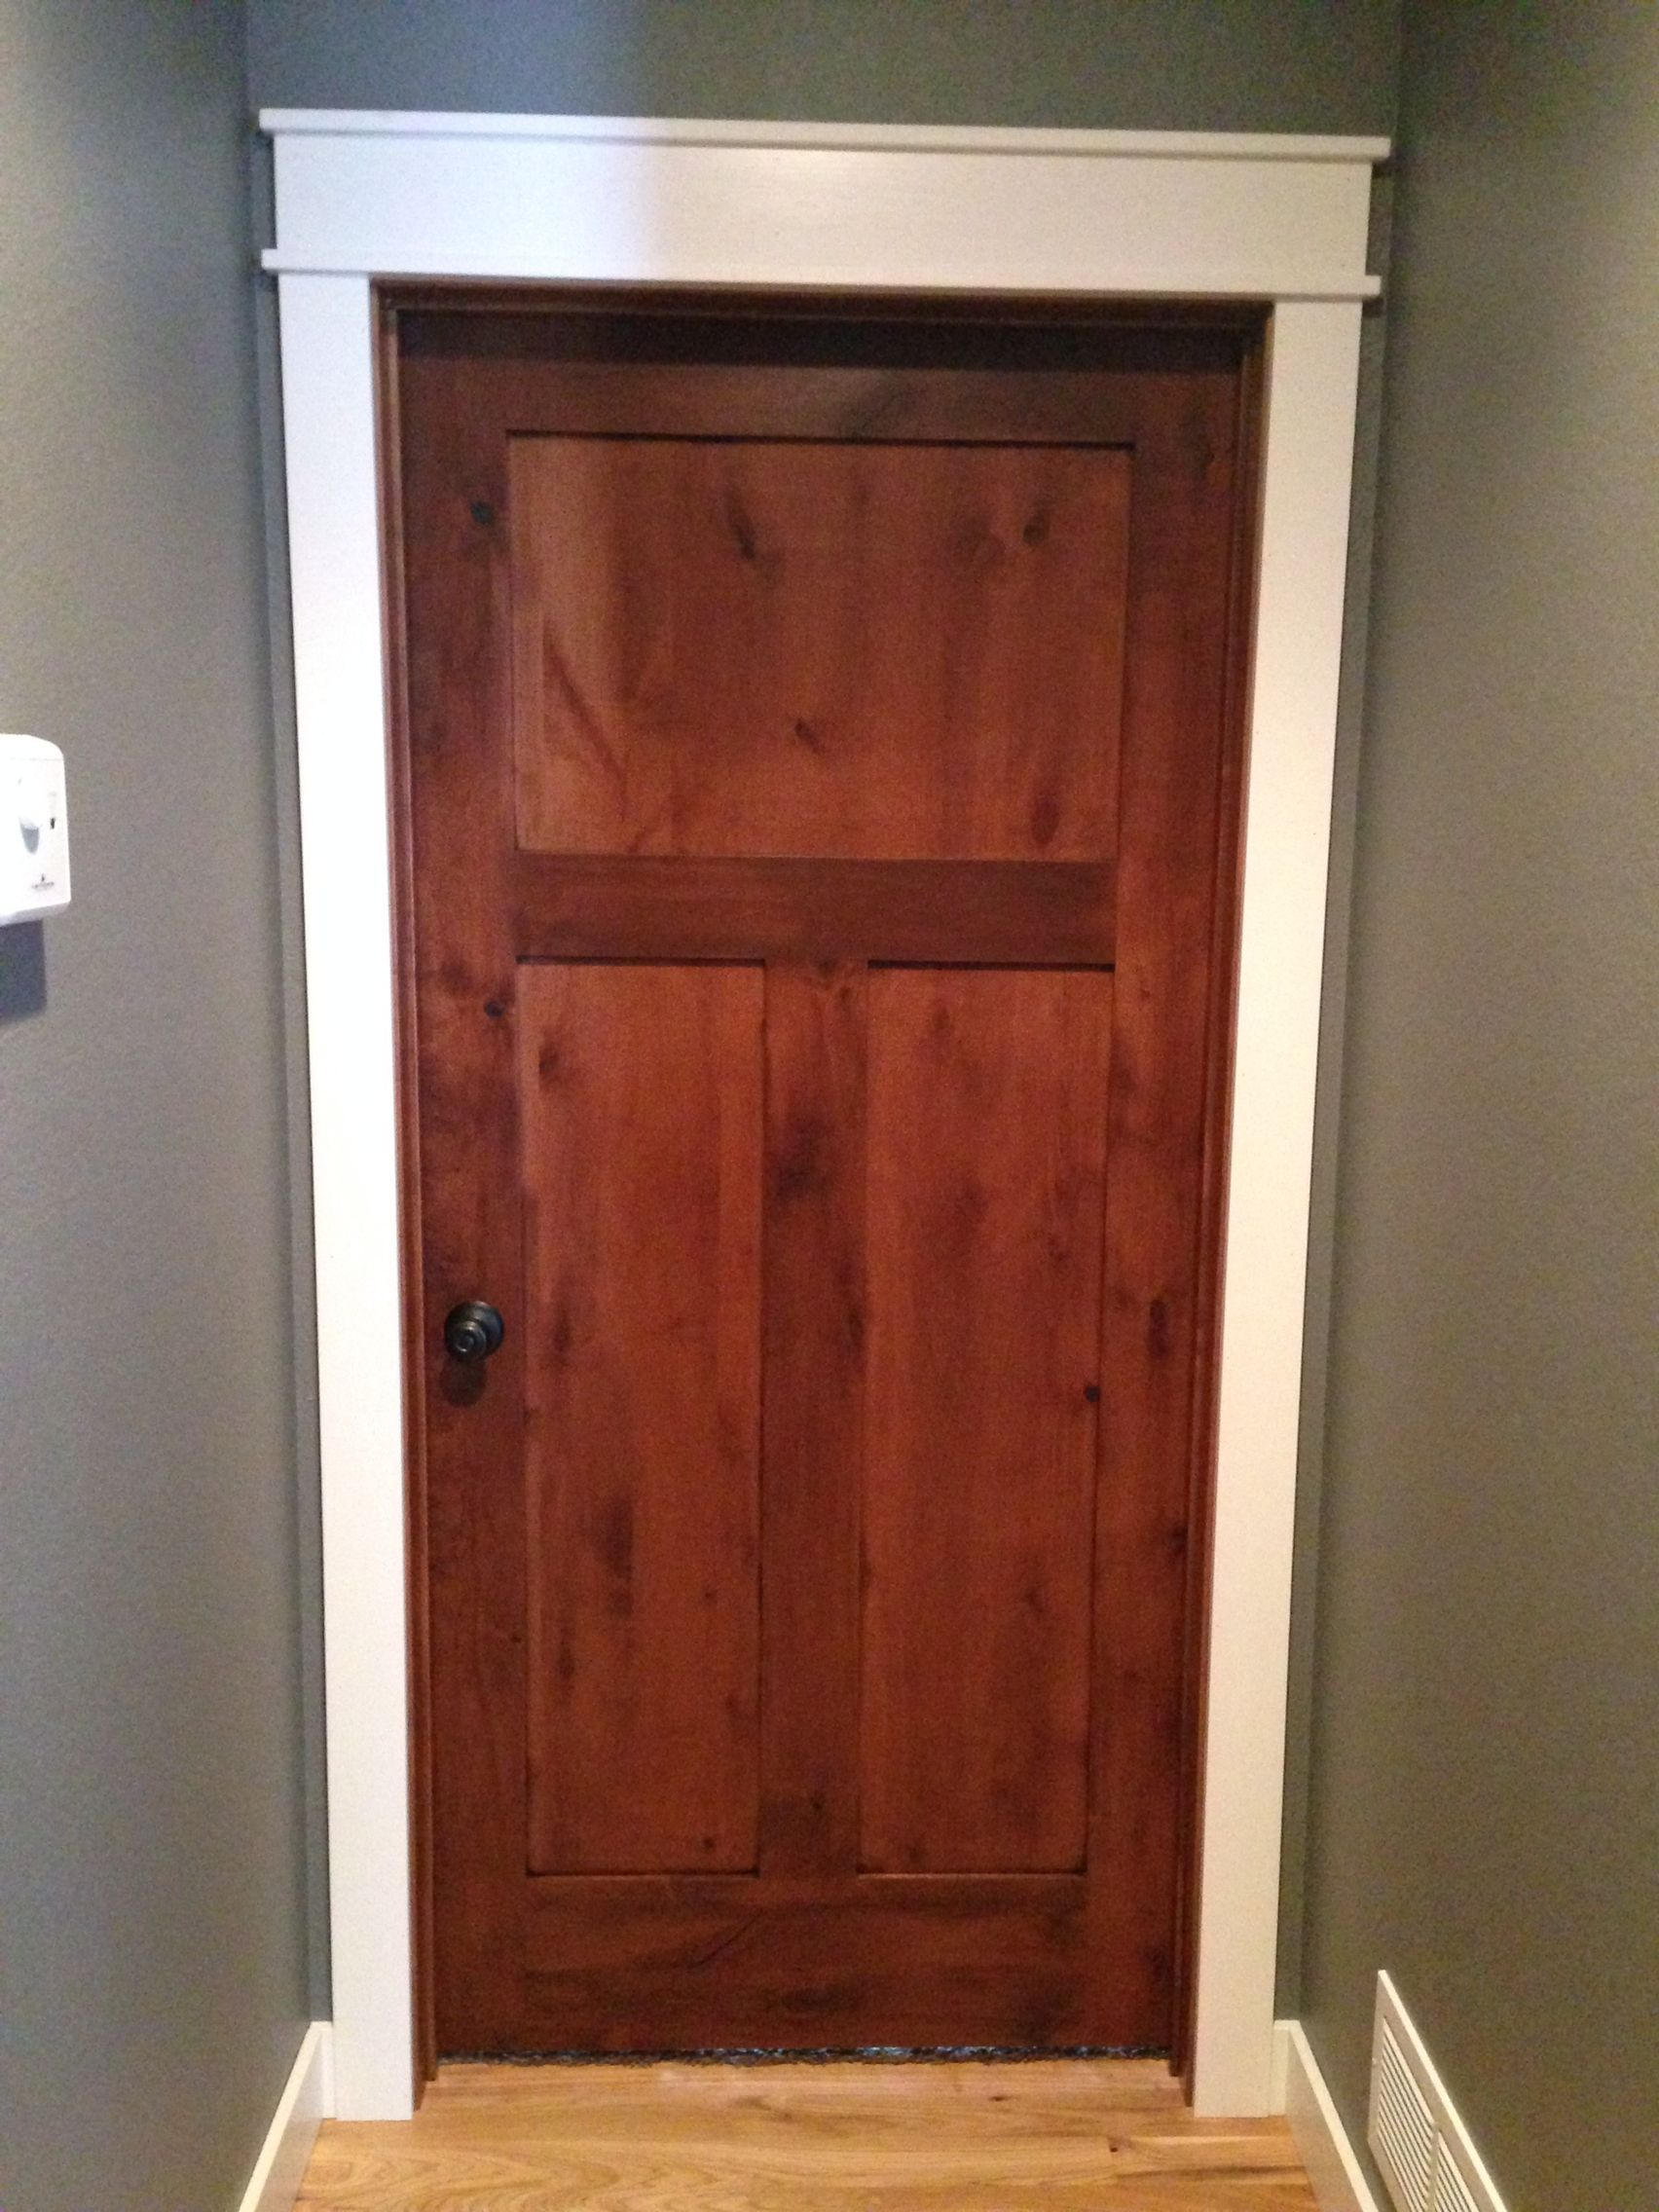 Rustic alder doors with white casings and trim & Rustic alder doors with white casings and trim | My Lake Home ...